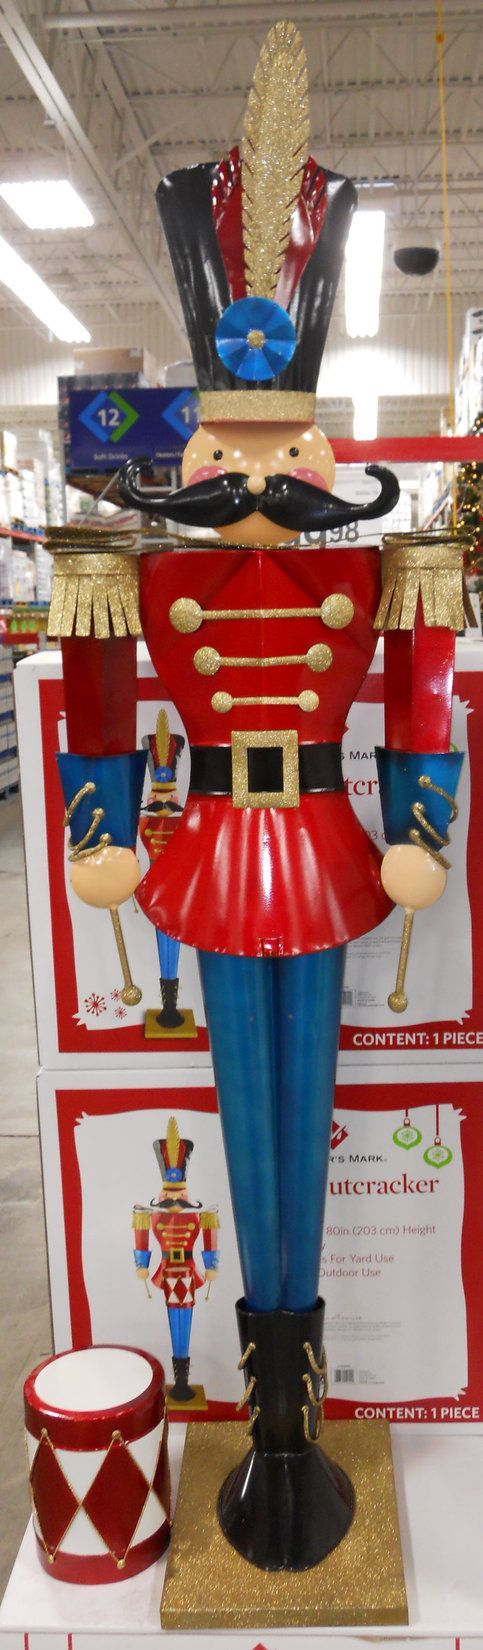 How to make a nutcracker christmas decoration - Find This Pin And More On Nutcracker Christmas By Lavenderblue852